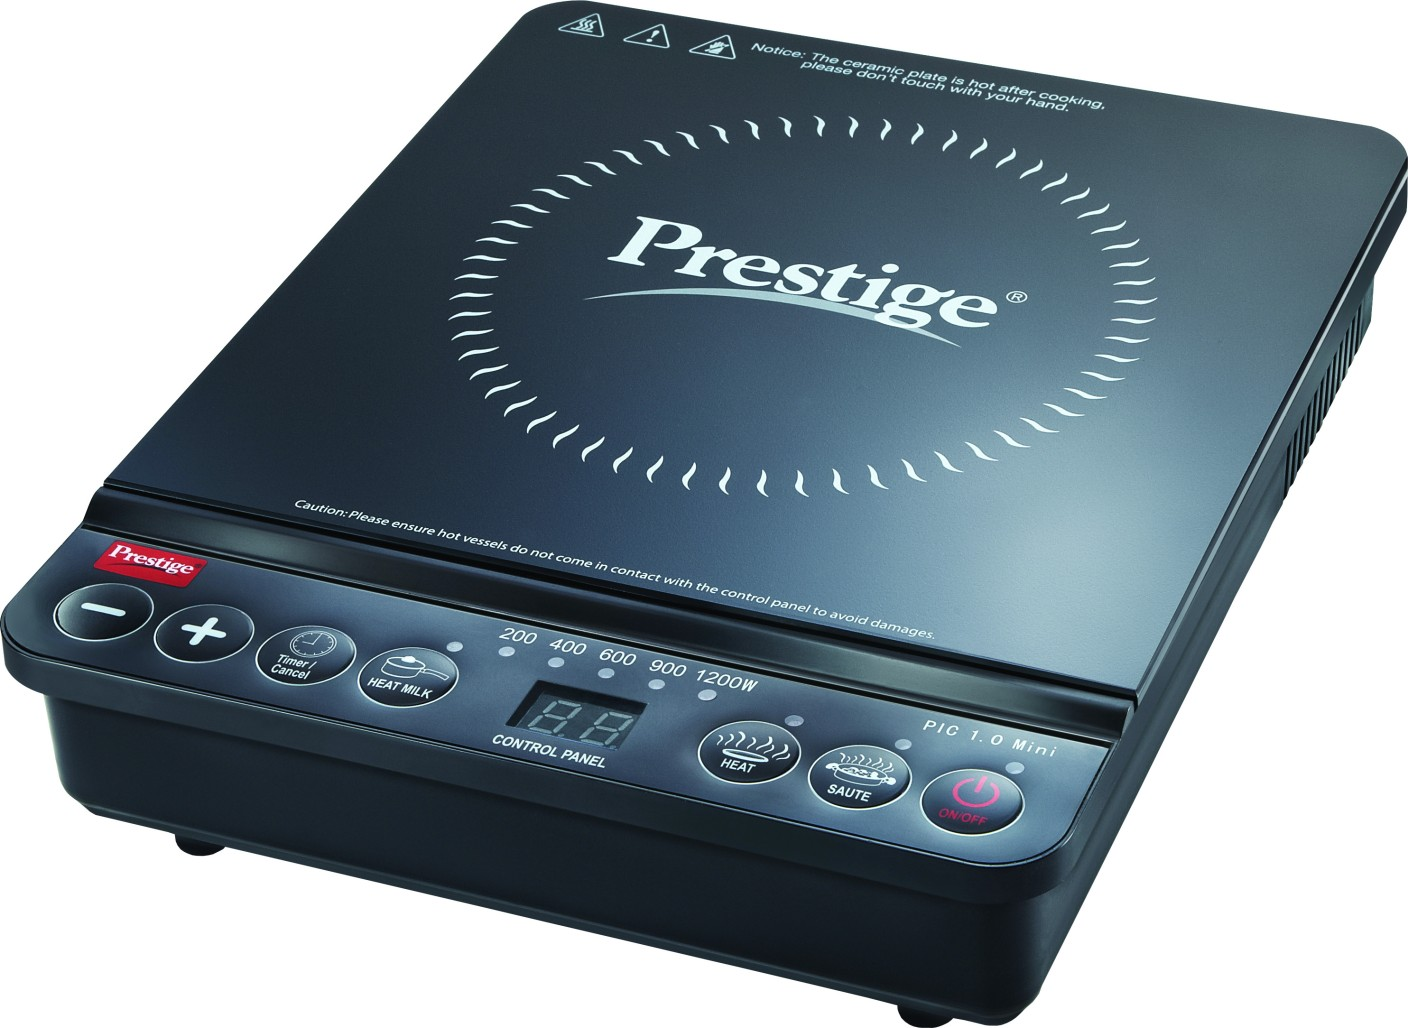 Prestige PIC 1.0 Mini Induction Cooktop - Buy Prestige PIC 1.0 ...